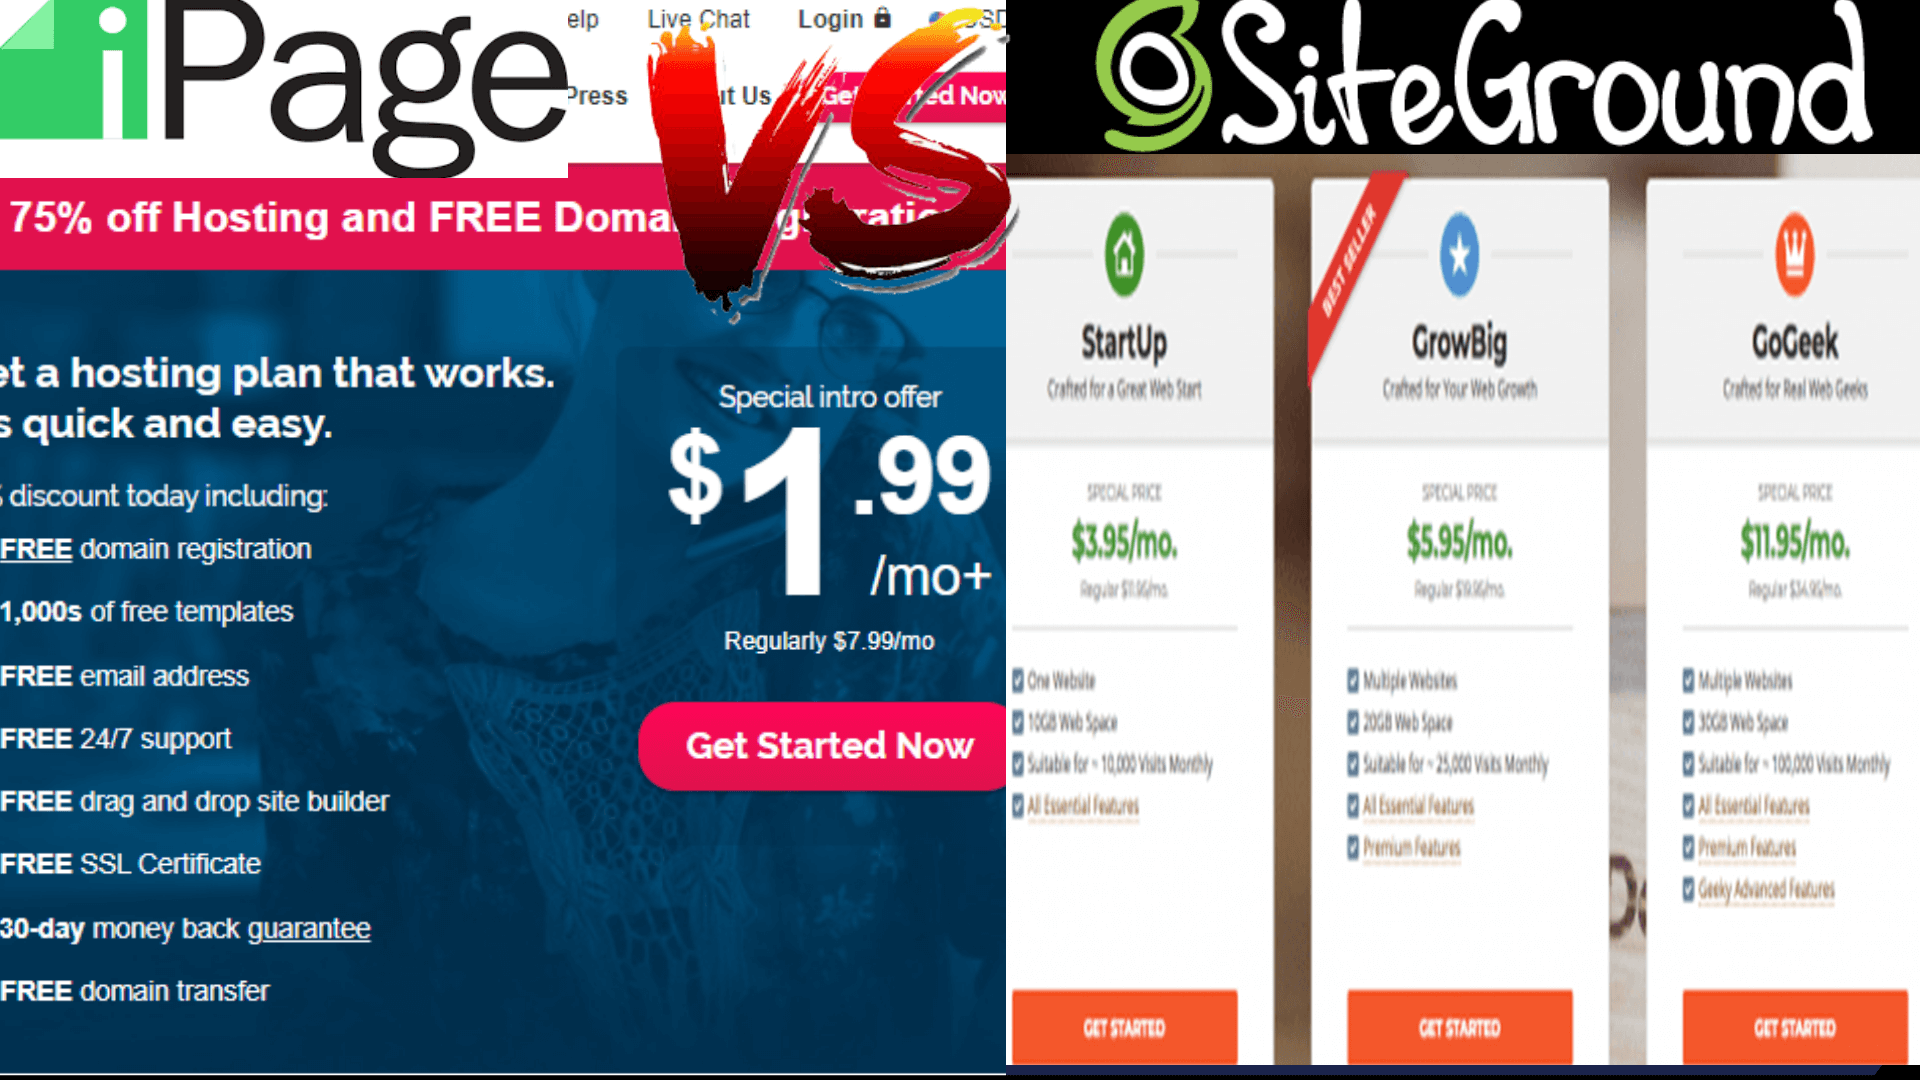 SiteGround vs. iPage Web Hosting